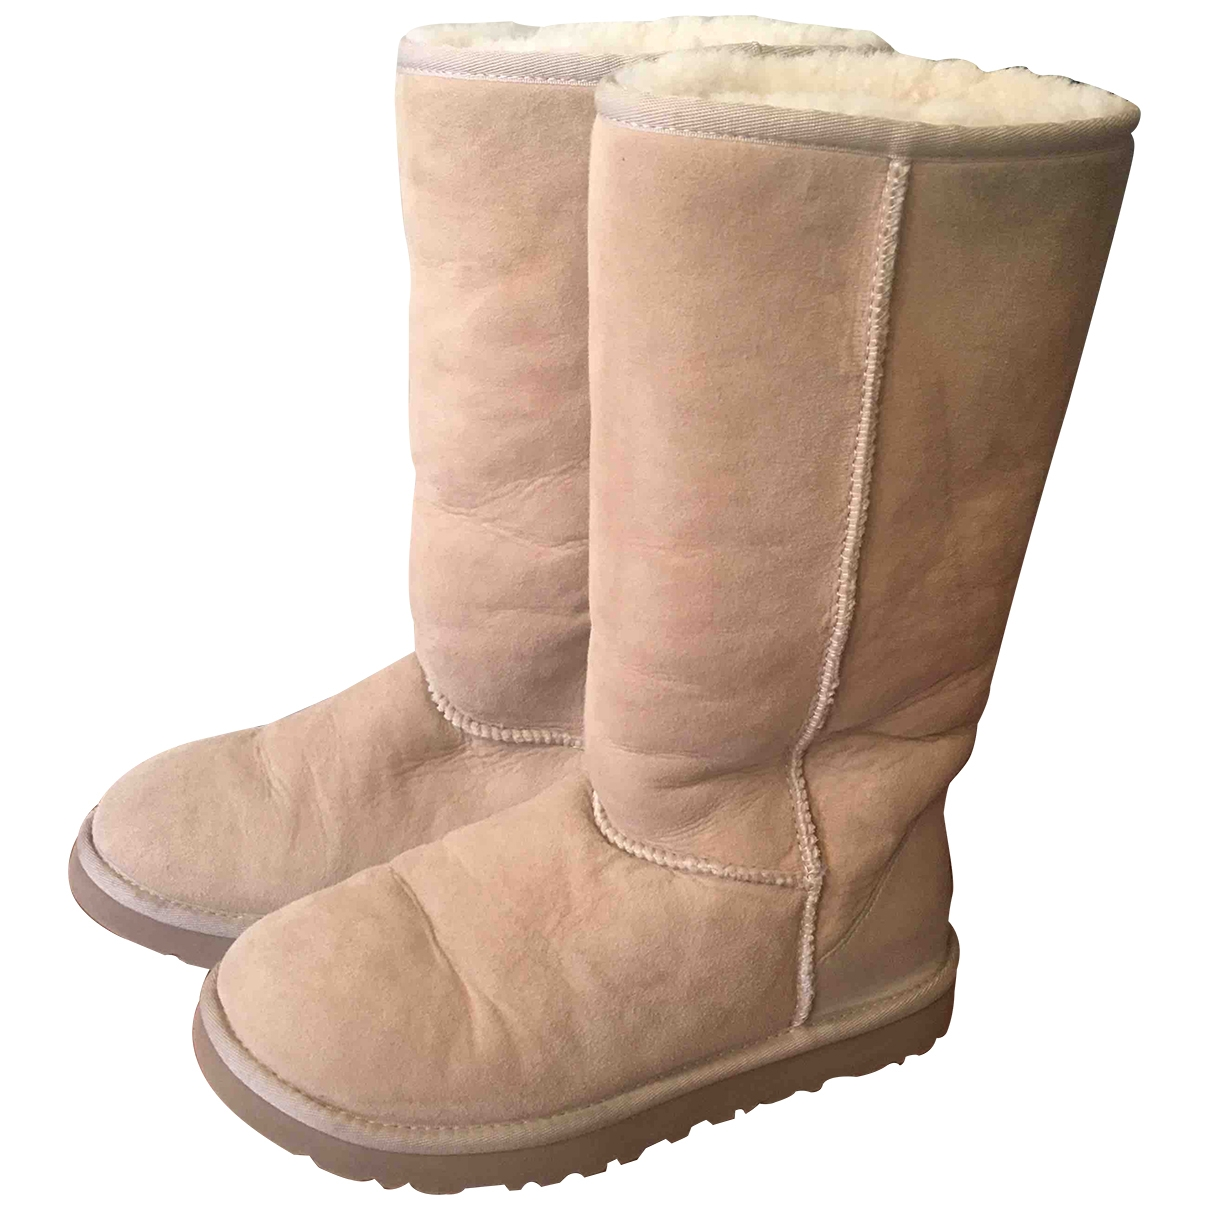 Ugg \N Beige Suede Boots for Women 7 US